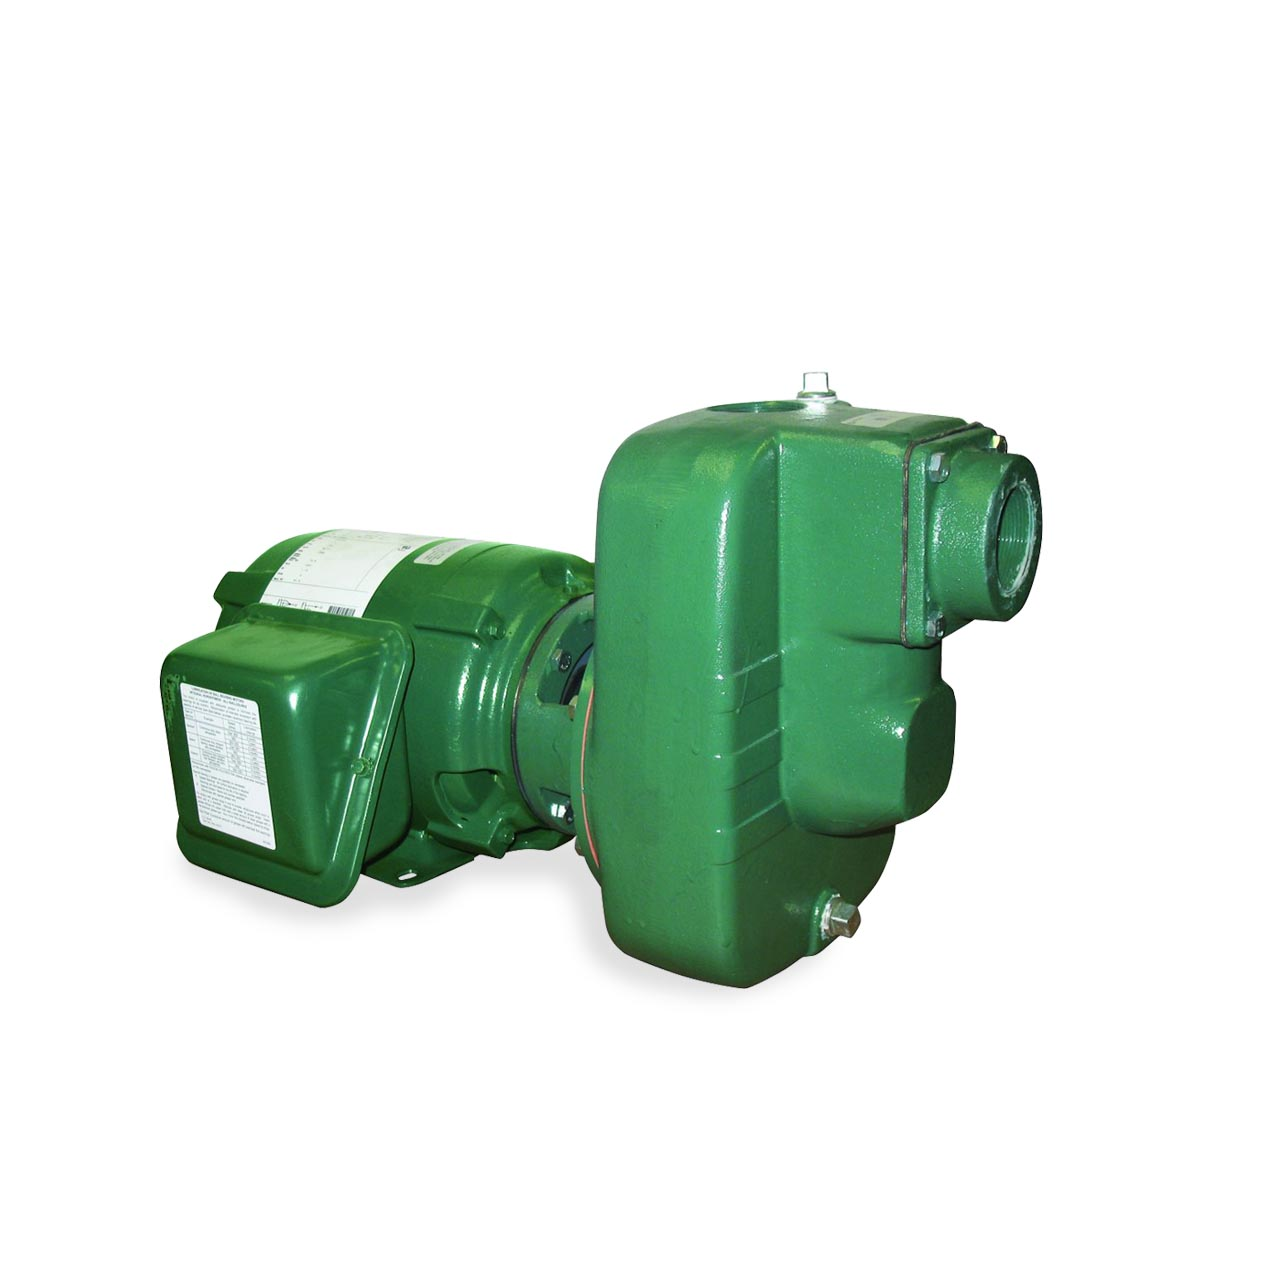 All Centrifugal Pumps